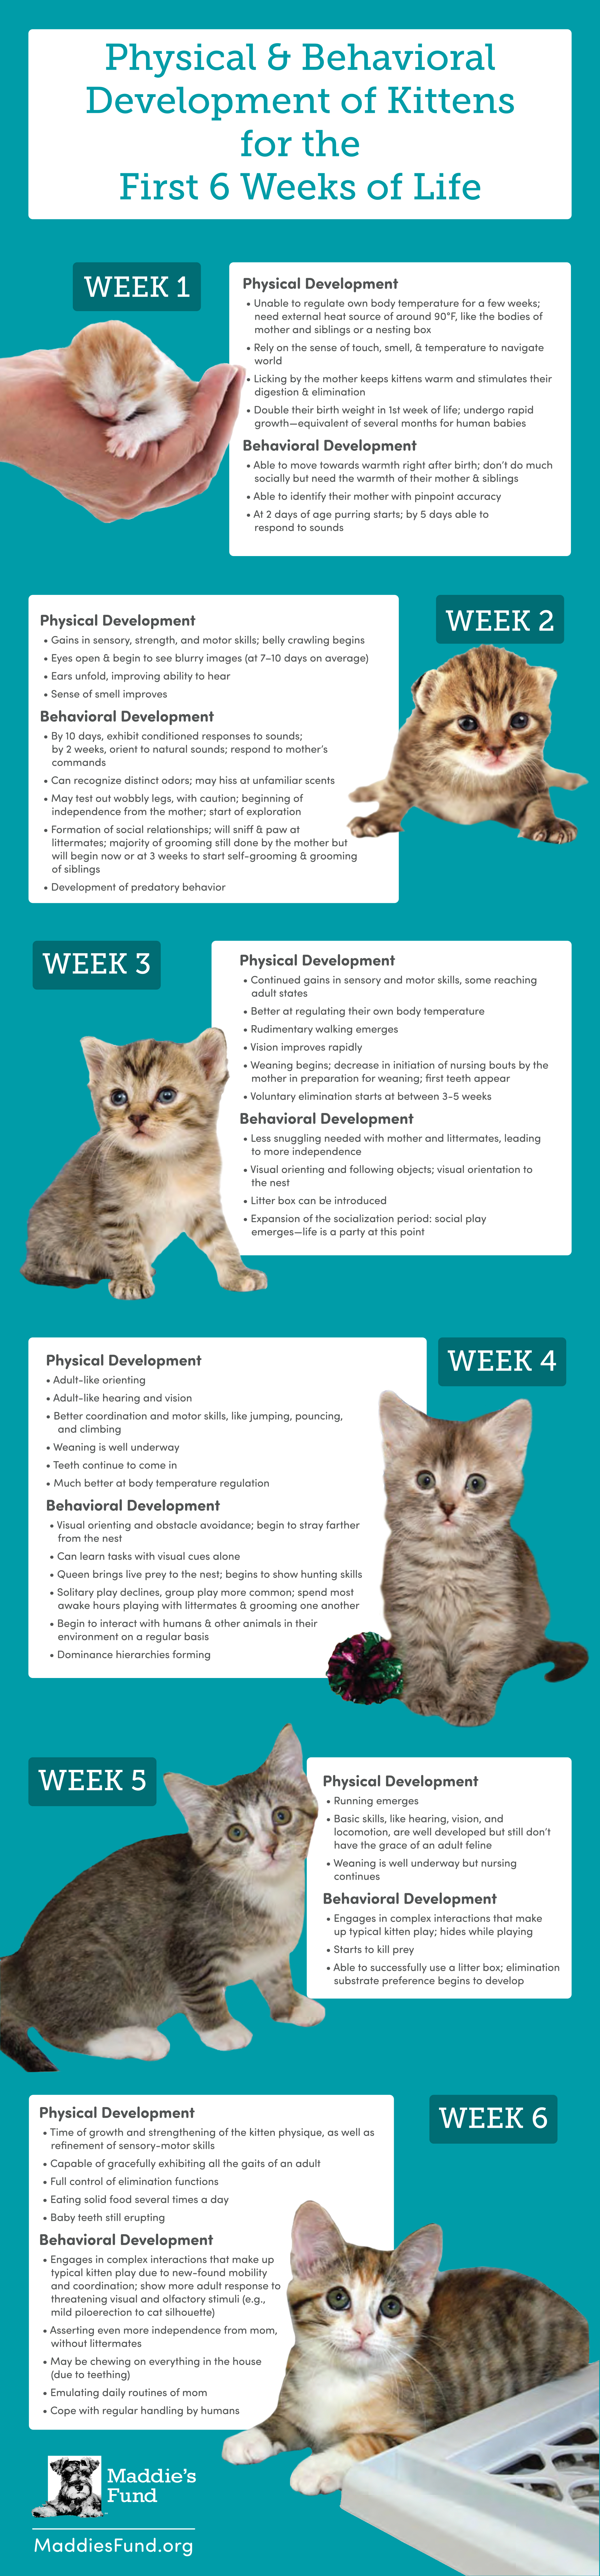 Physical And Behavioral Development Of Kittens For The First Six